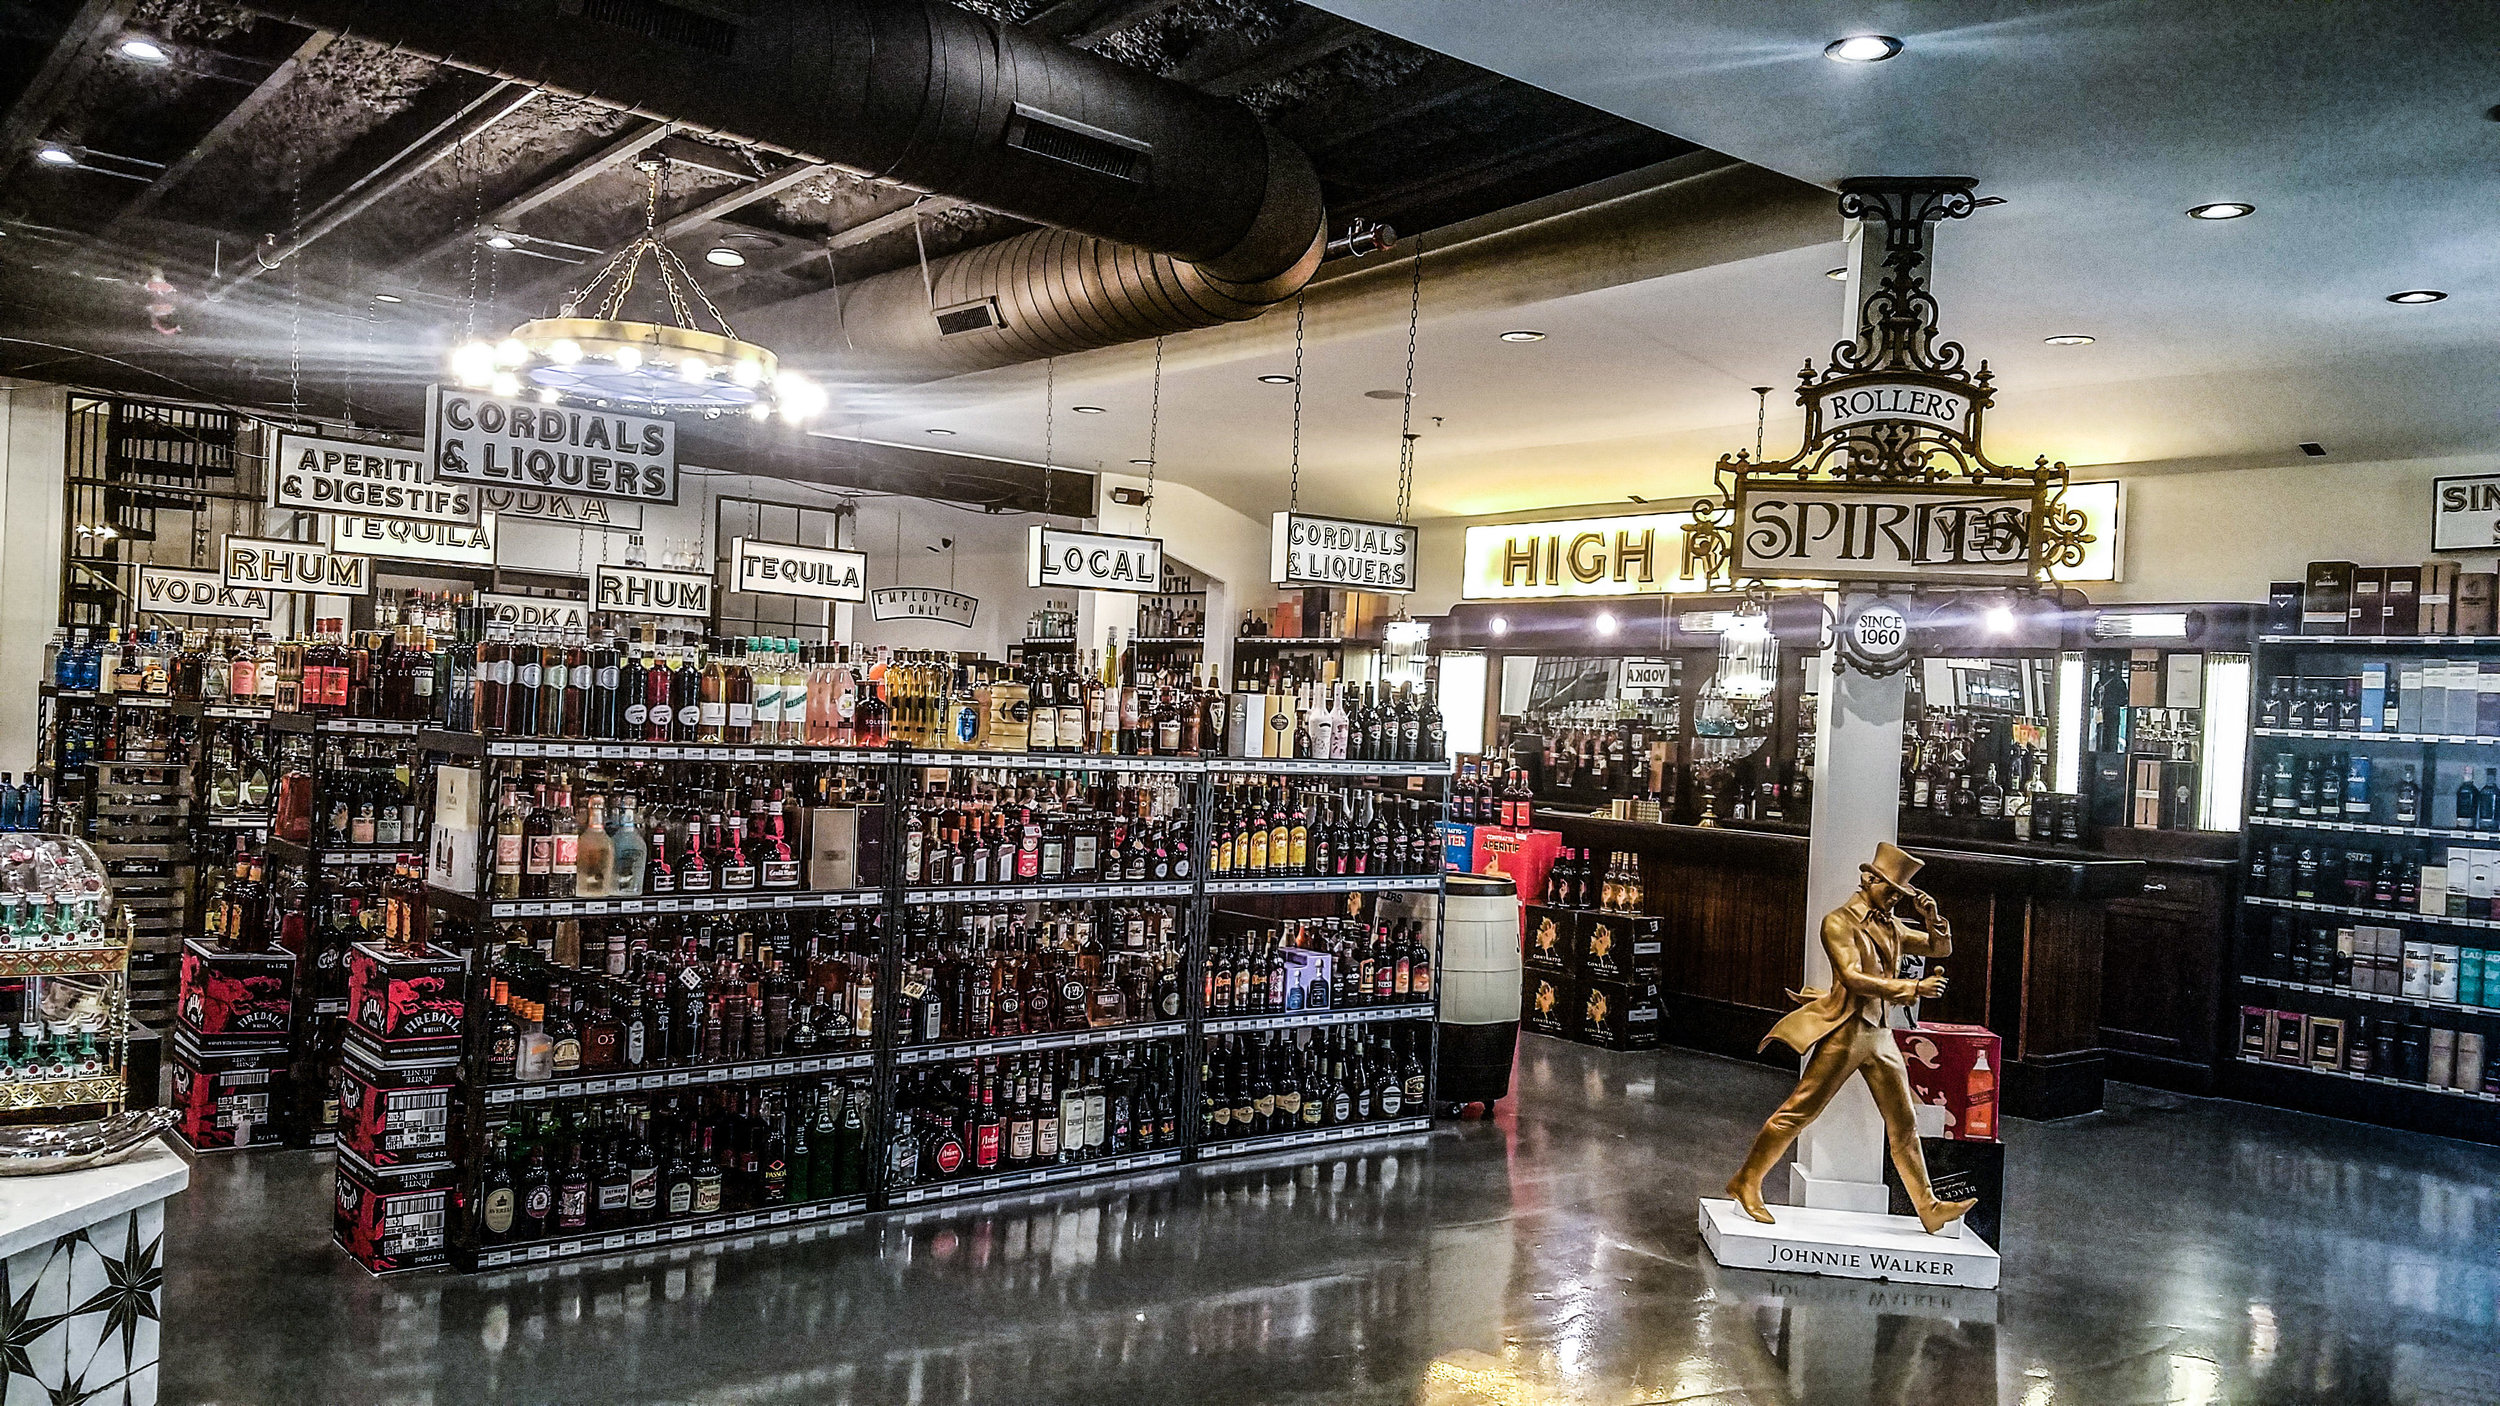 Spectacular Spirits - We offer an incredible selection of spirits. From local, small-batch productions, to all of your favorite big brand names, to hard-to-get specialty and seasonal items, we've got you covered. Our Single Malt Whiskey selection is unrivaled in the area! Enjoy 5% off our already low prices when you buy six 1.75 L bottles. Sign up today to receive other special offers!